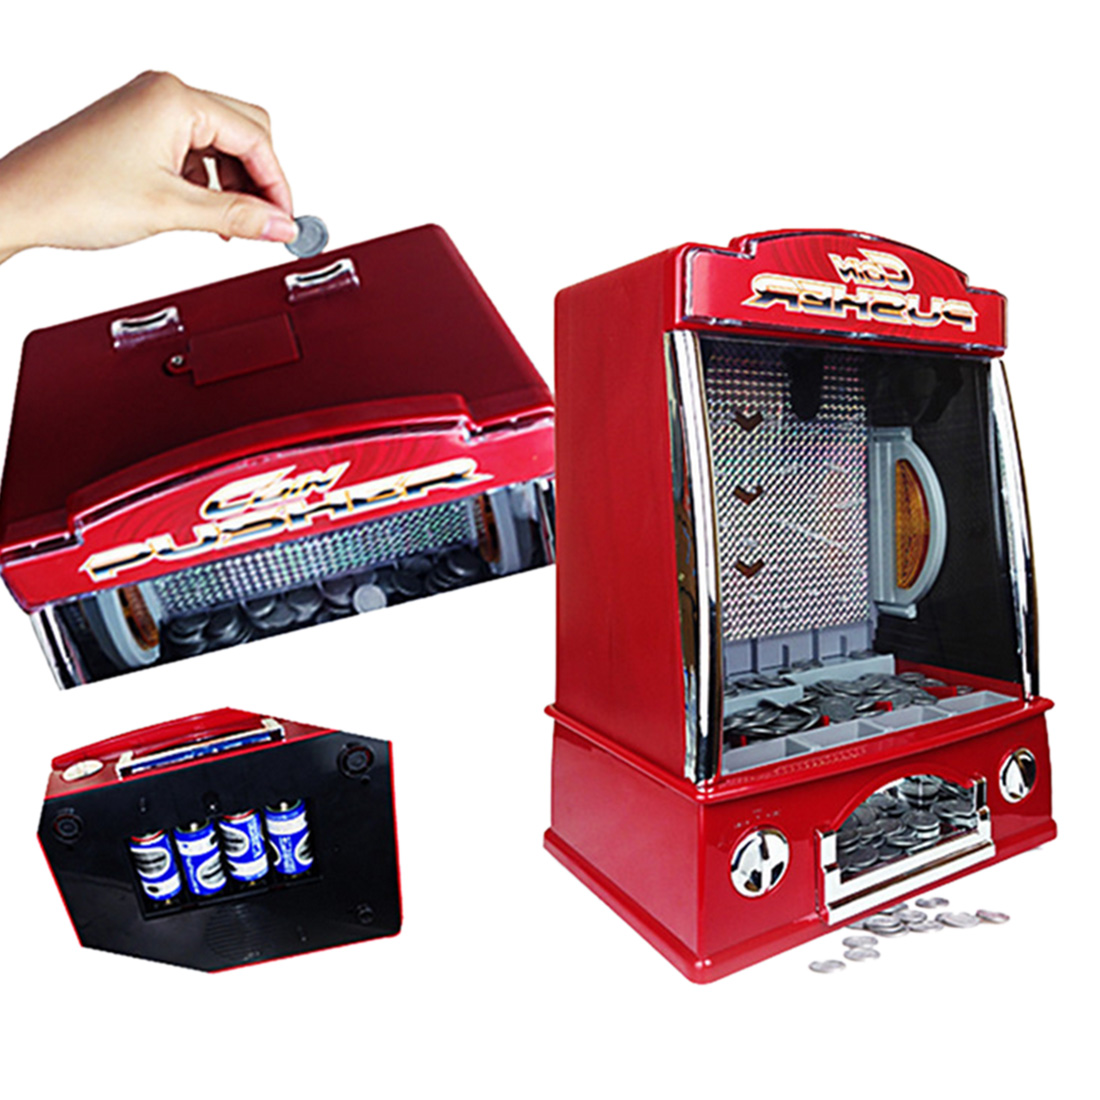 Mini Penny Pusher Coin Pusher Toy for Kids Fairground Arcade Amusements Game Replica for Famile Children(China (Mainland))